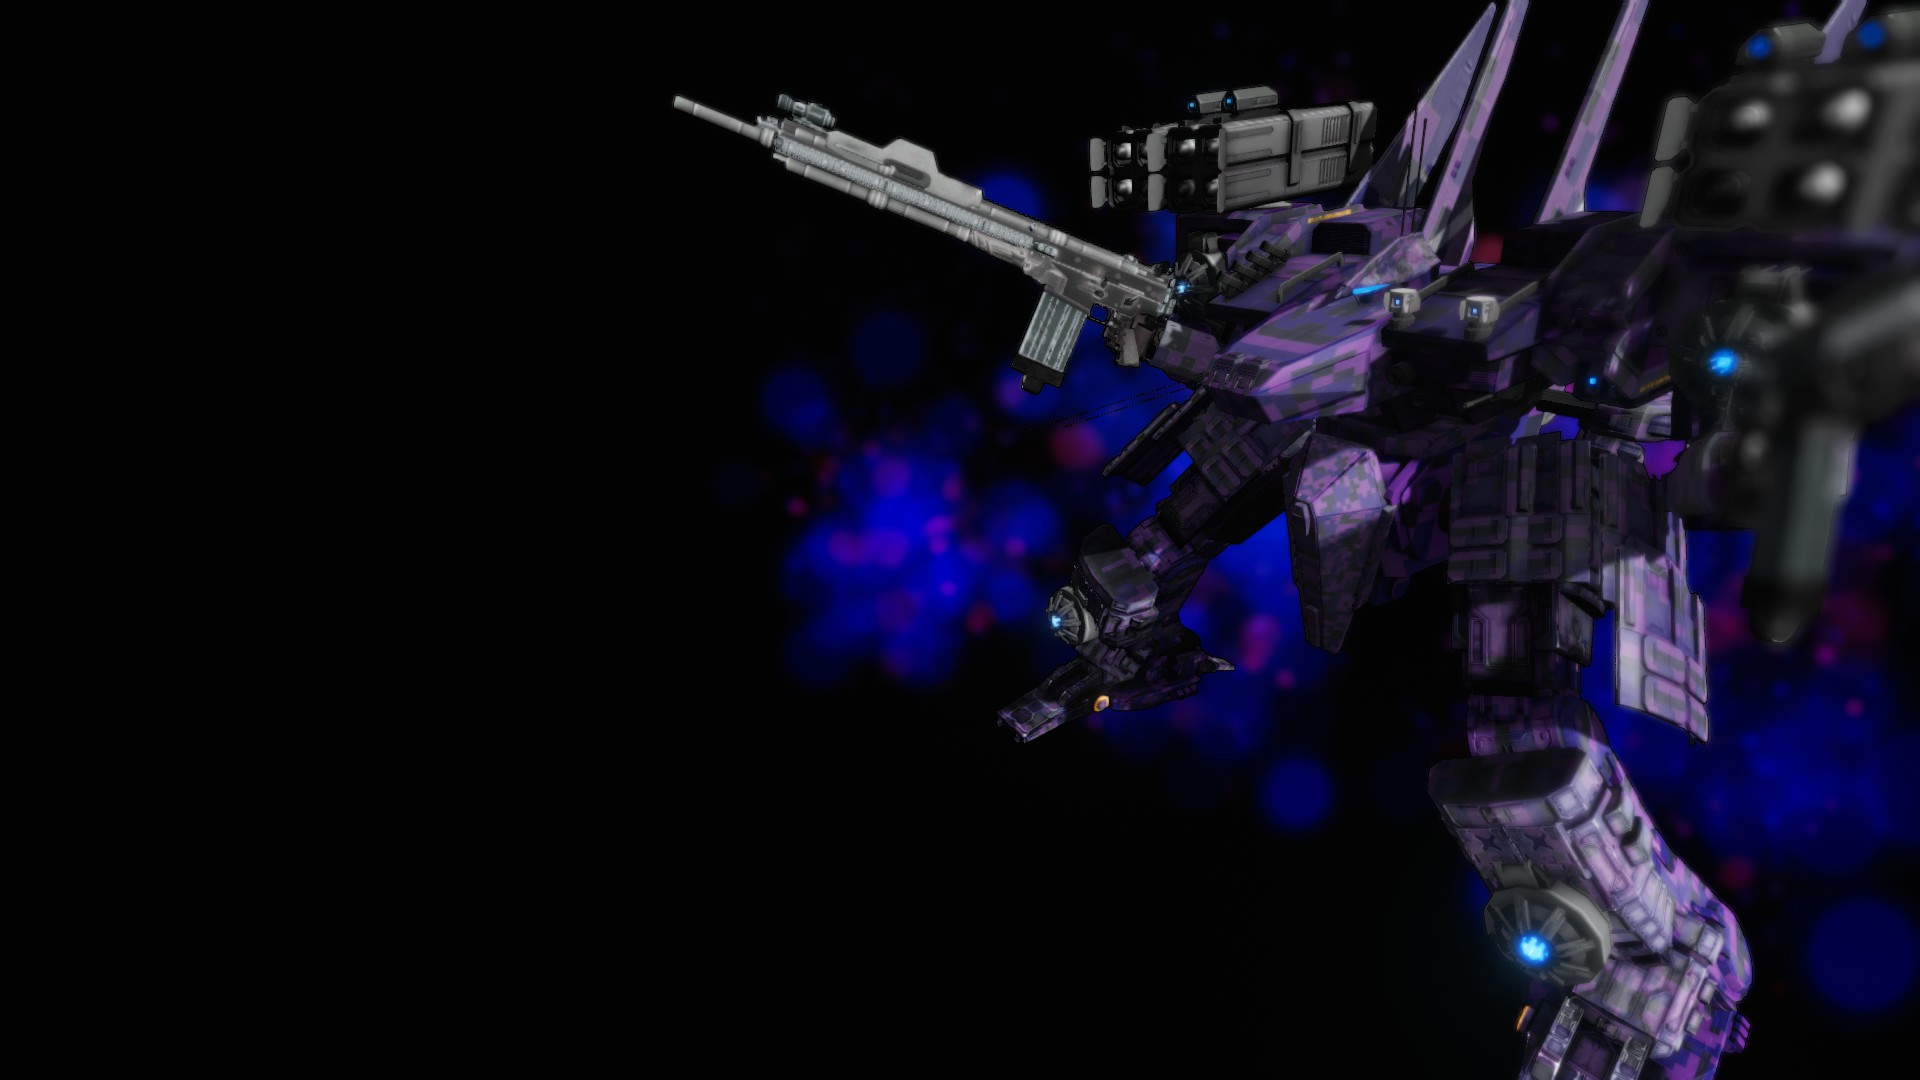 Mecha Knights: Nightmare - Change Background Photo in Game Tips - How to Enable Photo mode and Change backgrounds - F448930